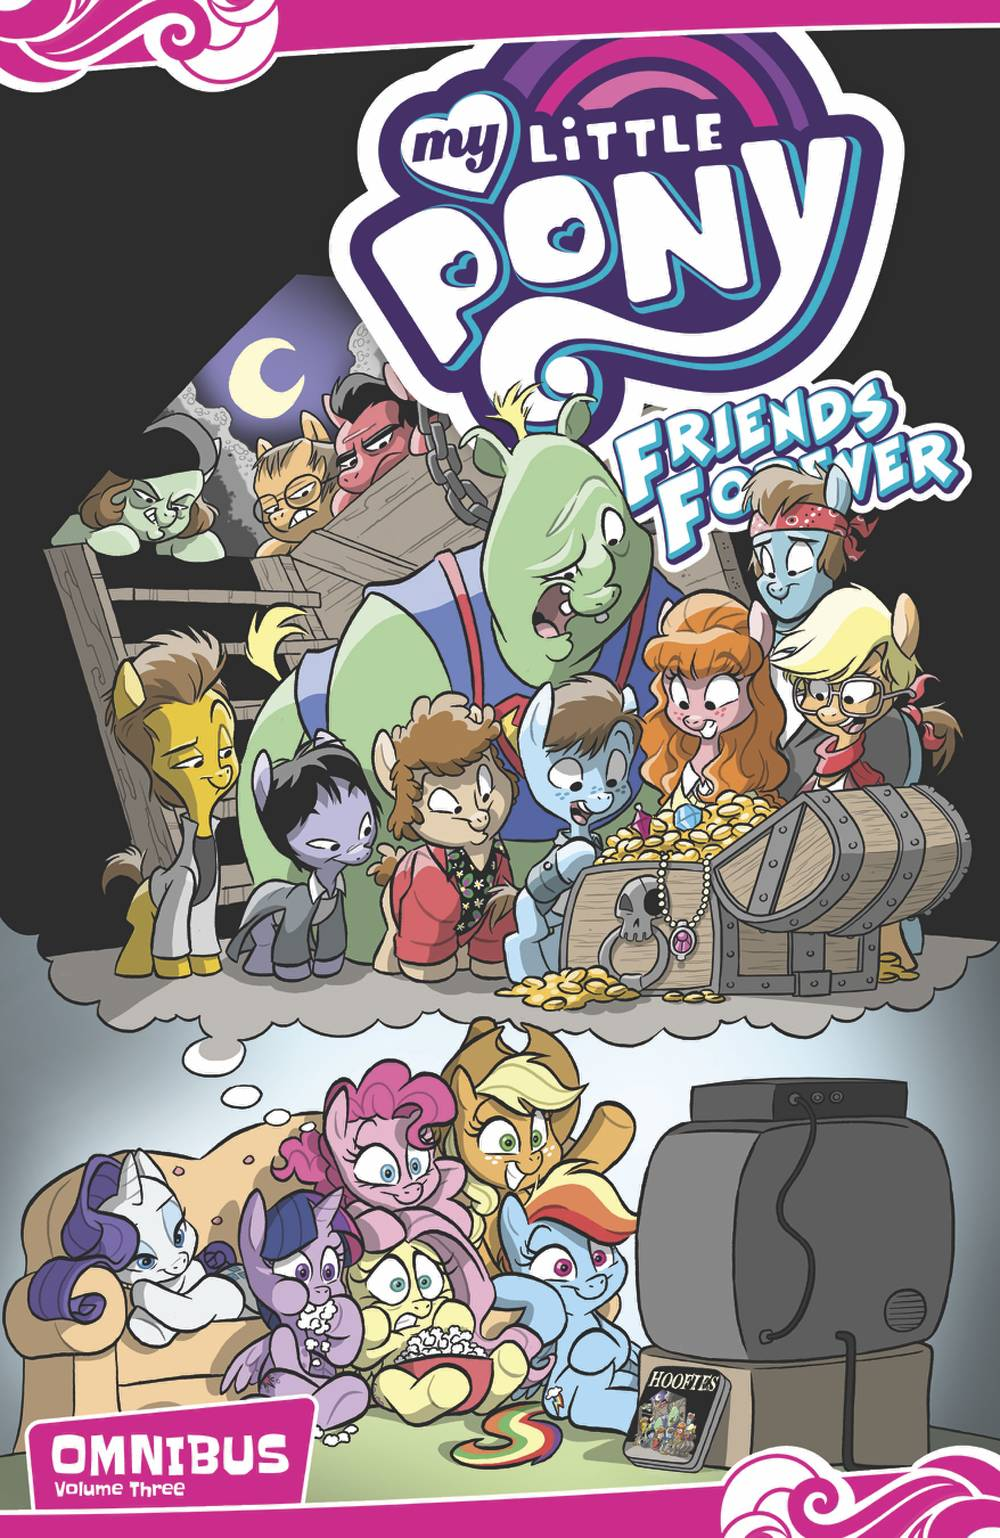 MY LITTLE PONY: FRIENDS FOREVER OMNIBUS VOL 03